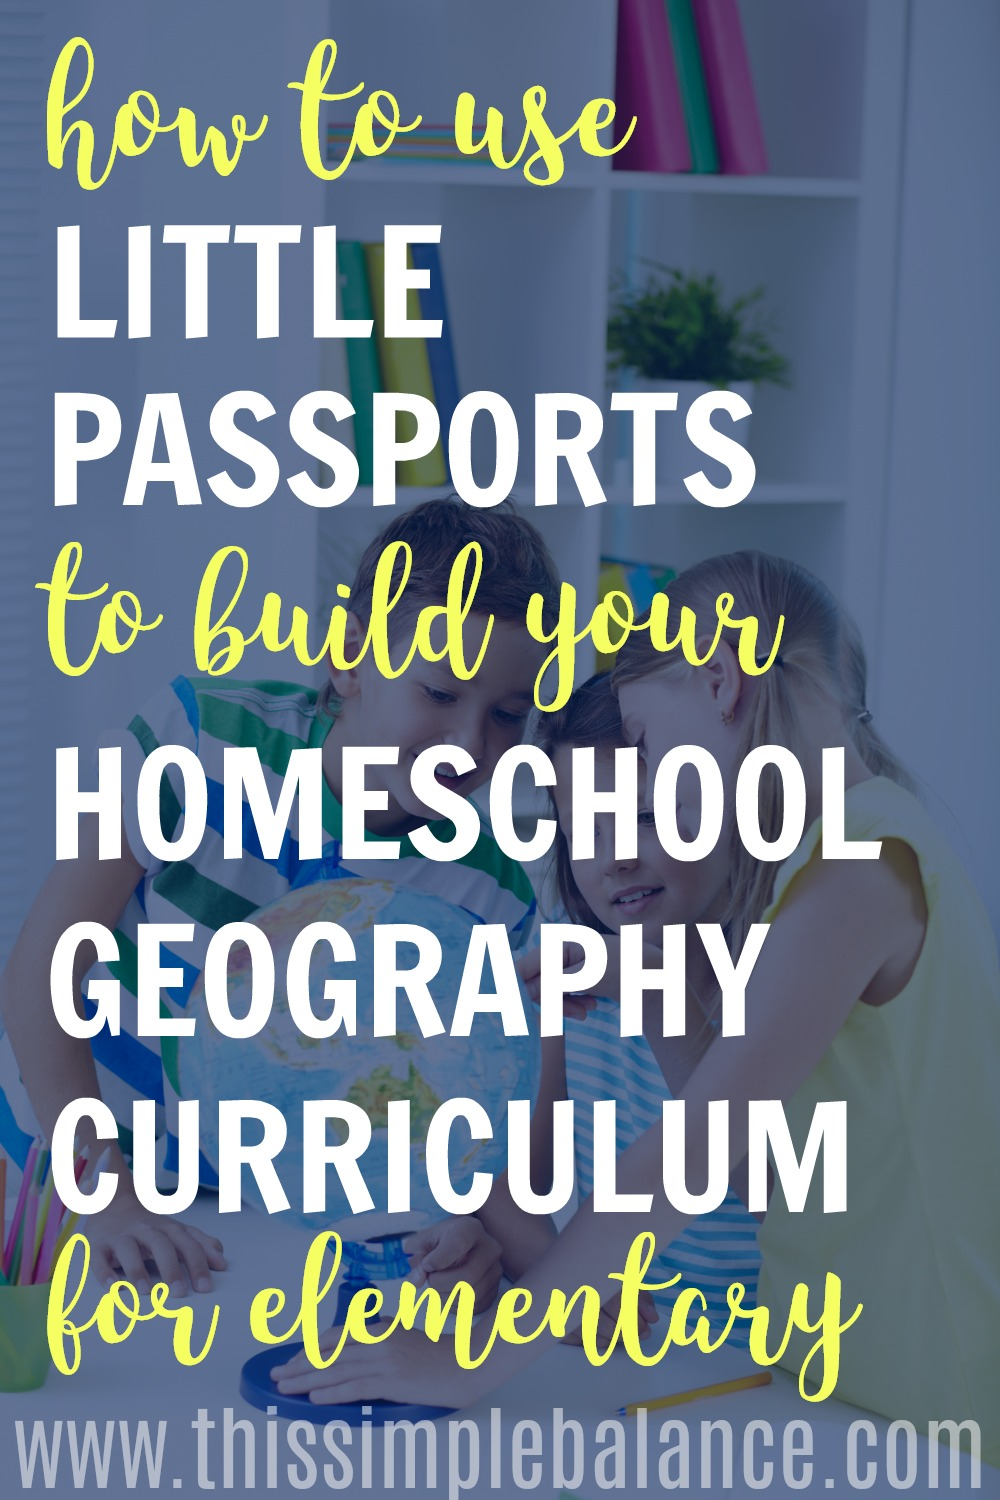 Homeschool Geography Curriculum | Little Passports | Explore the World | Relaxed Homeschooling | Simple Homeschool | Minimalist Homeschool